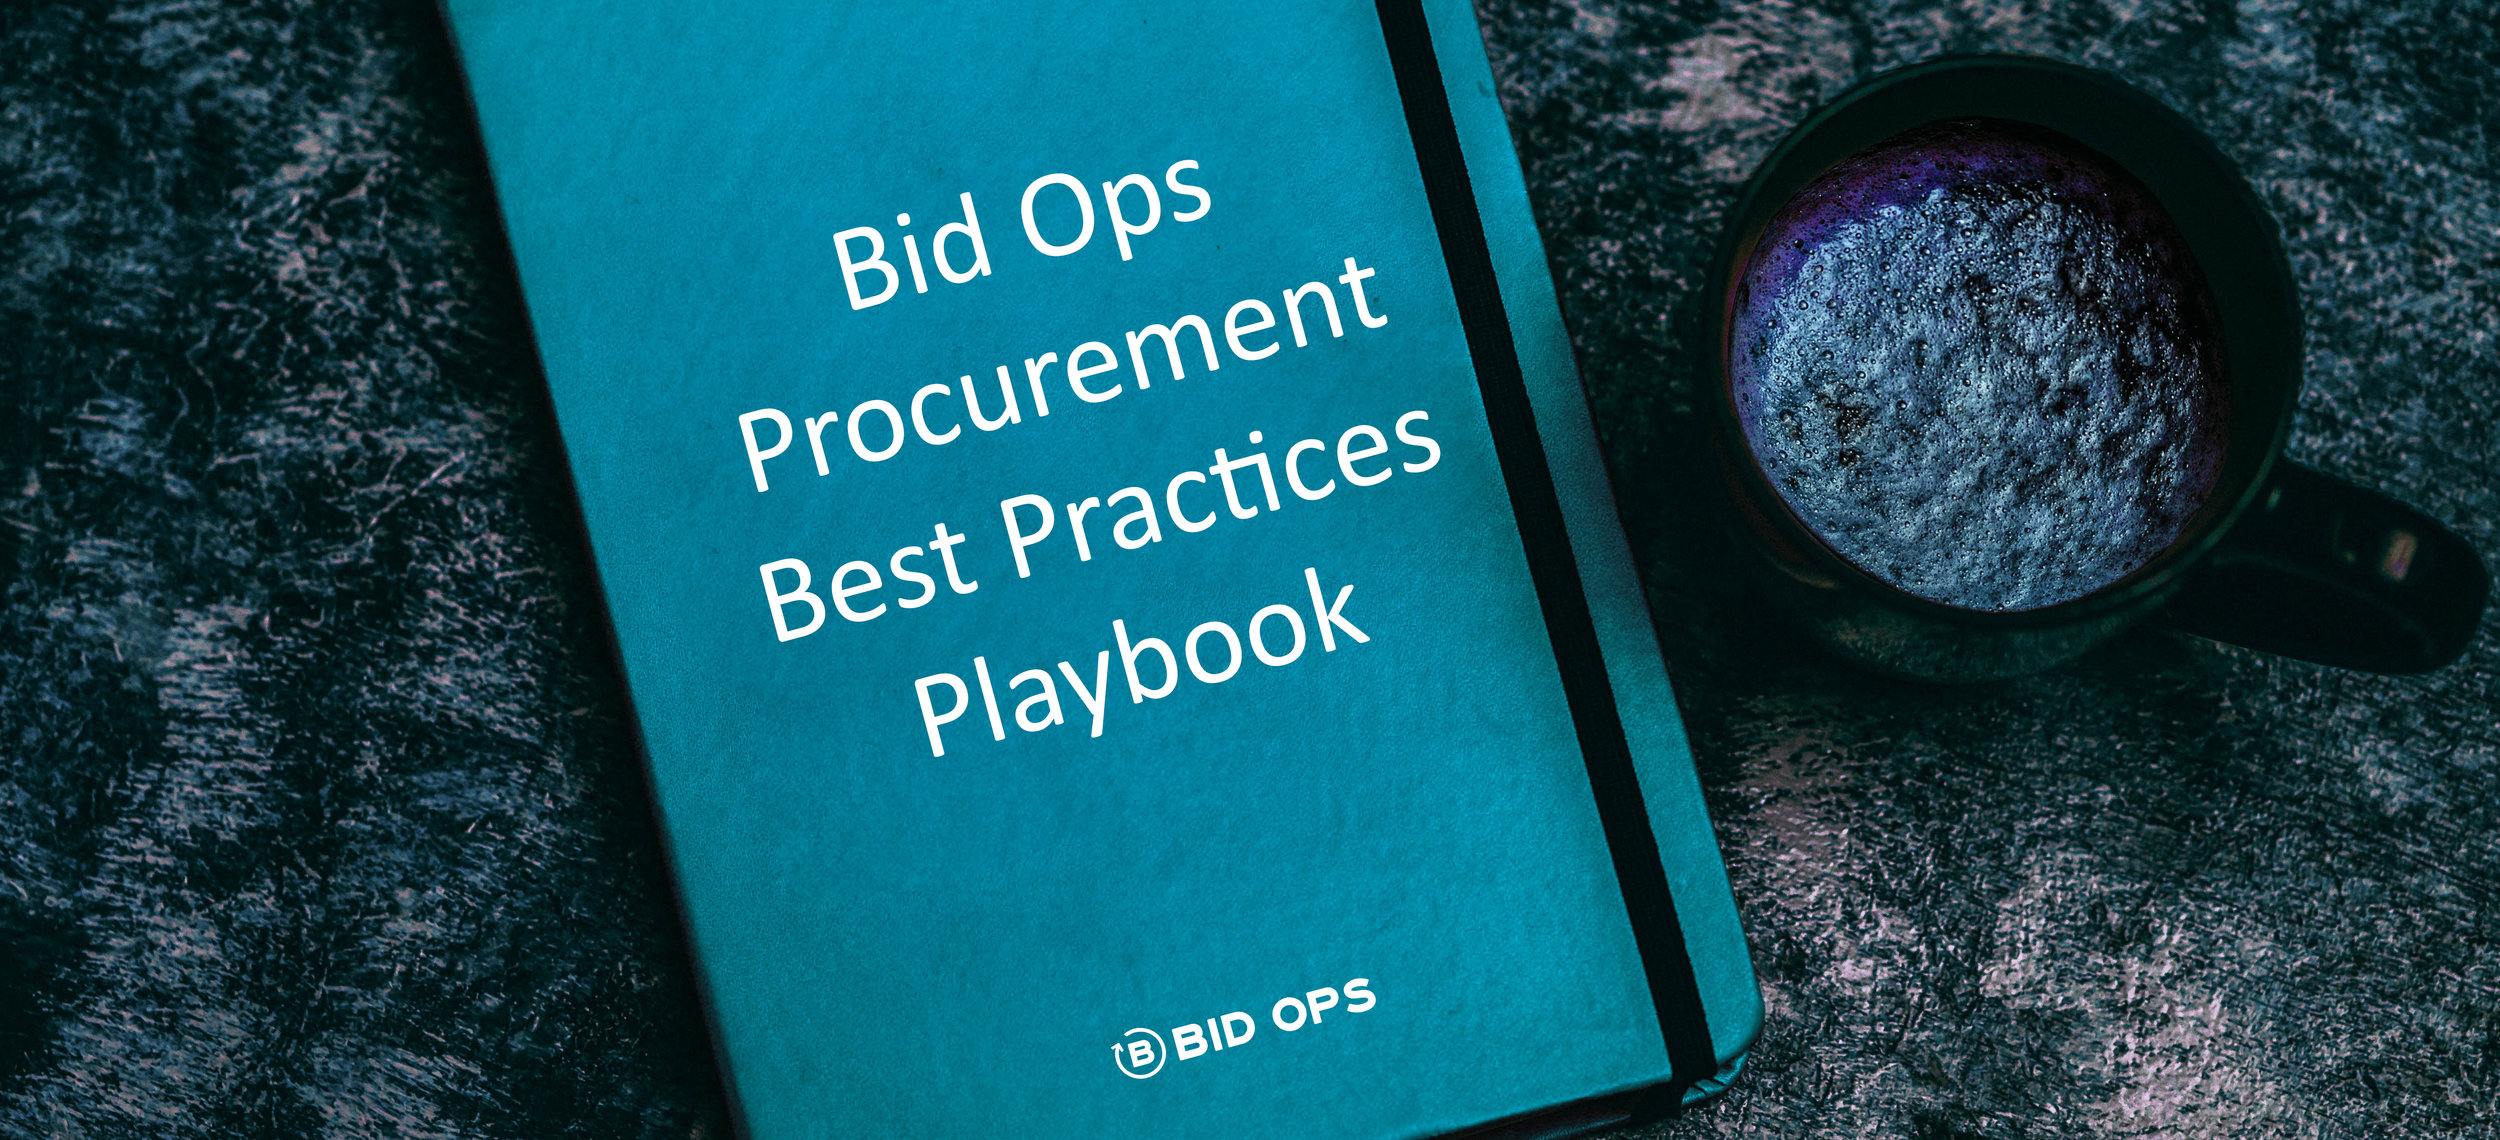 procurement playbook copy.jpg